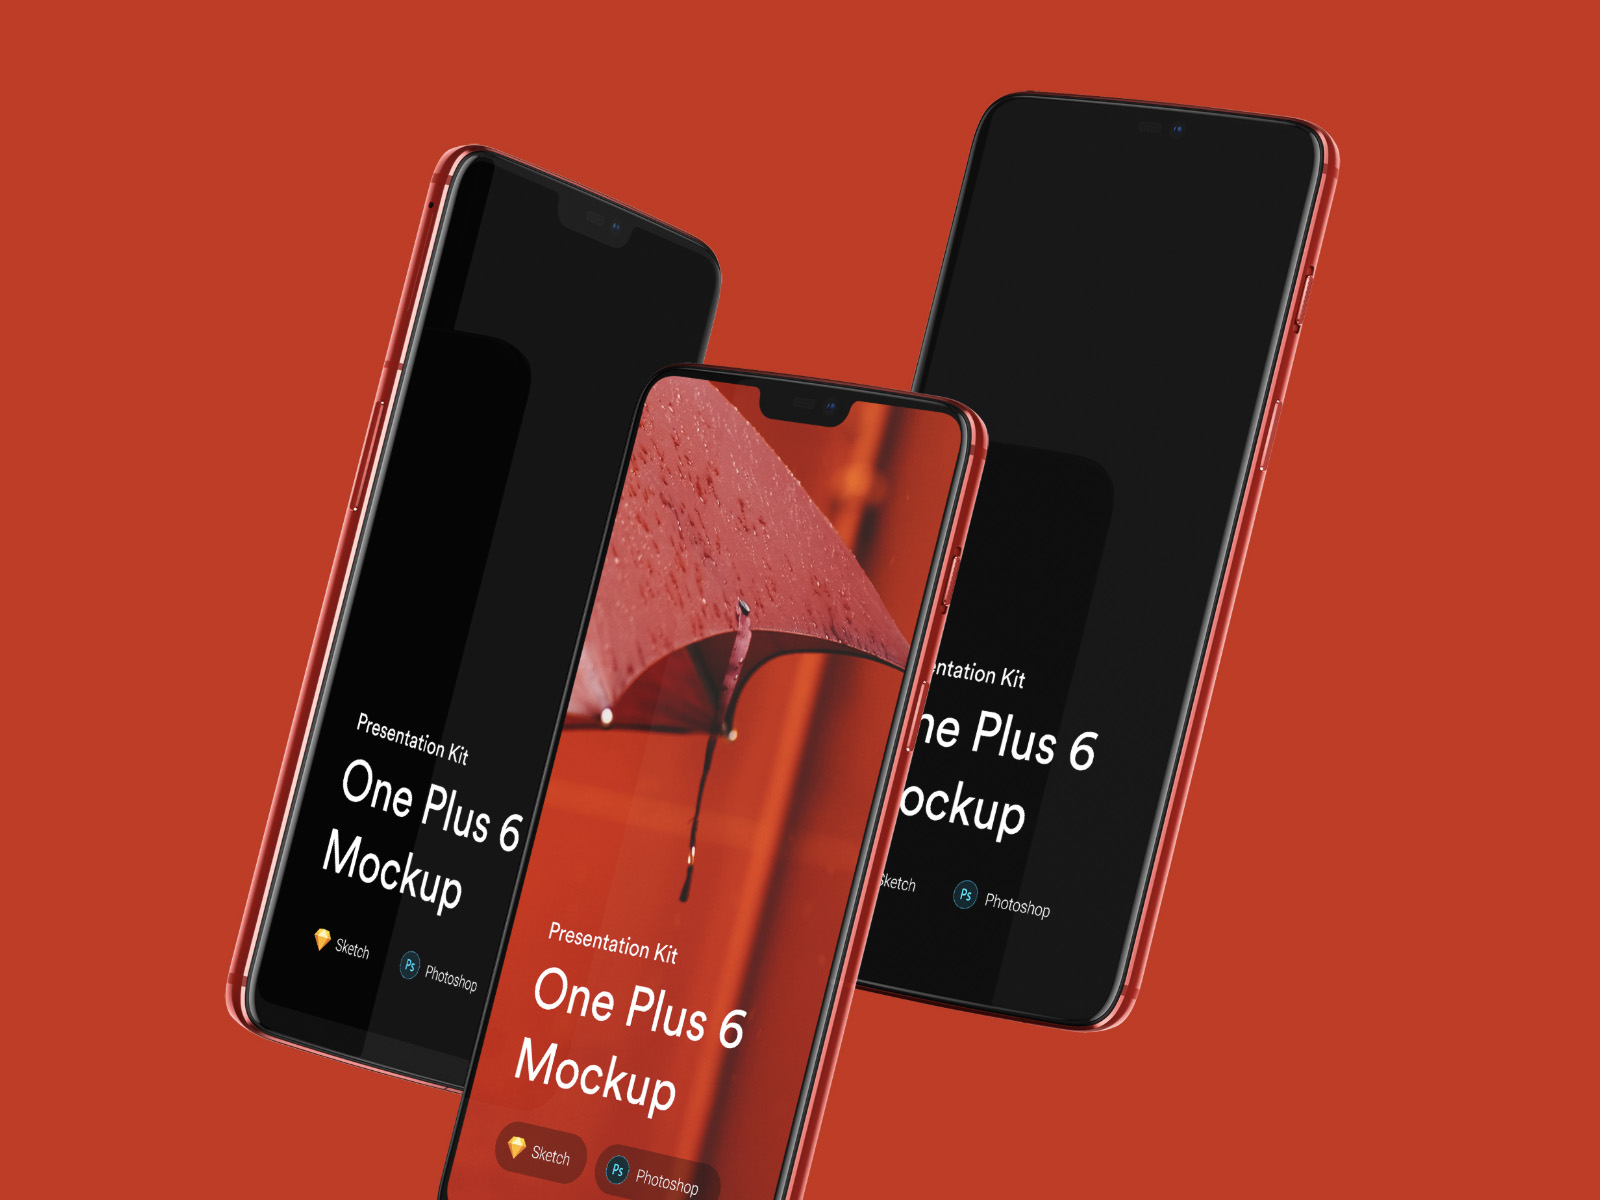 One Plus mockups. Beautiful mockup set with a lot features